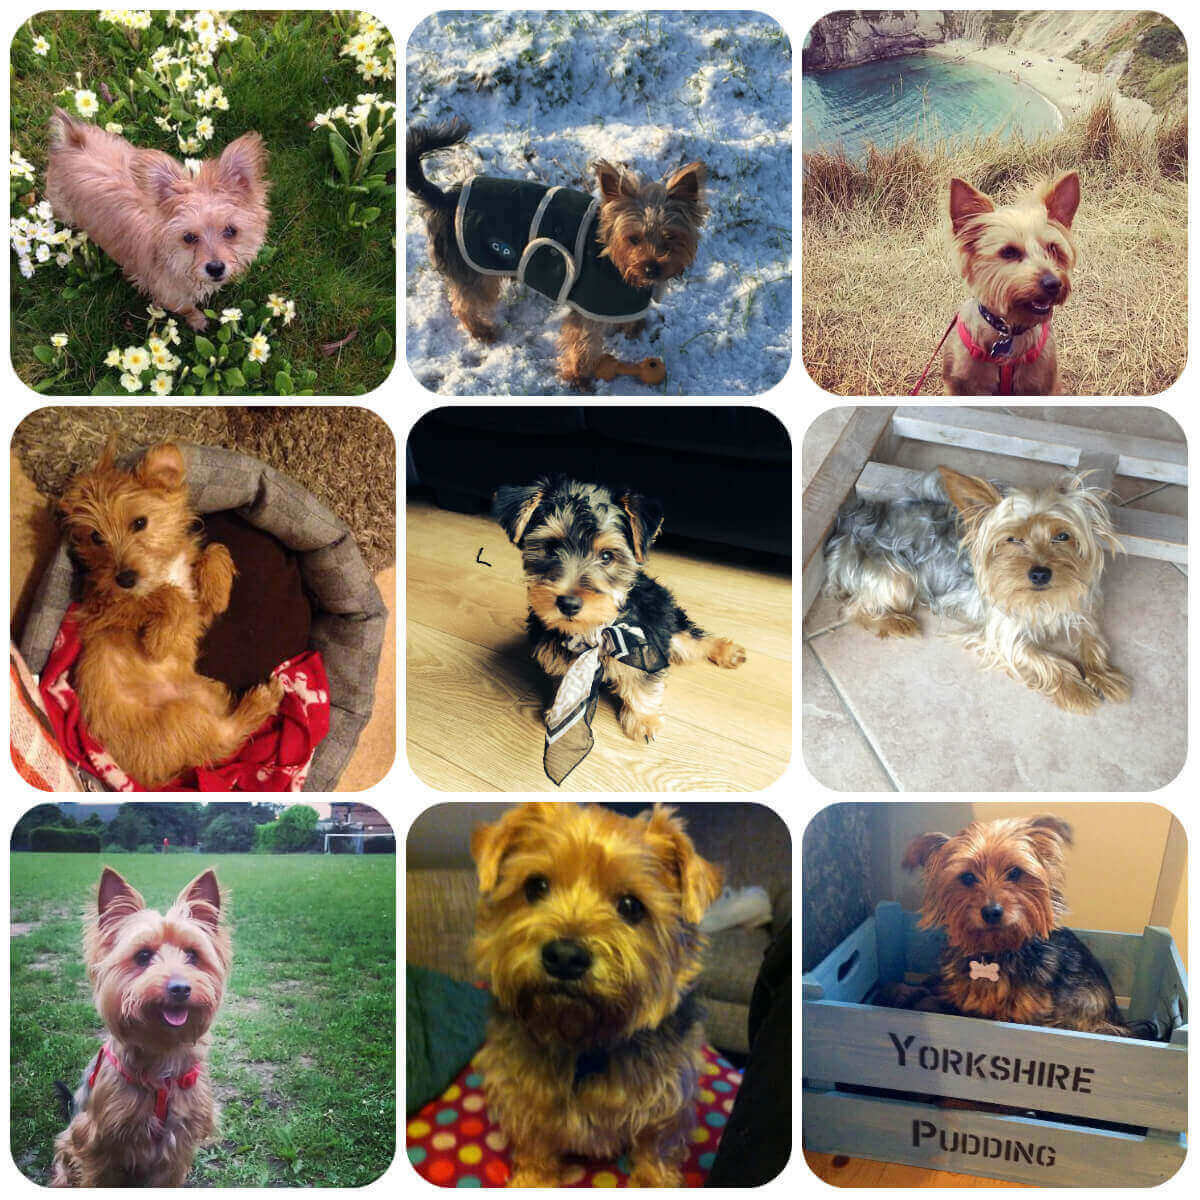 collage of Yorkshire Terrier dogs and puppies, part of BorrowMyDoggy's guide to dog breeds.